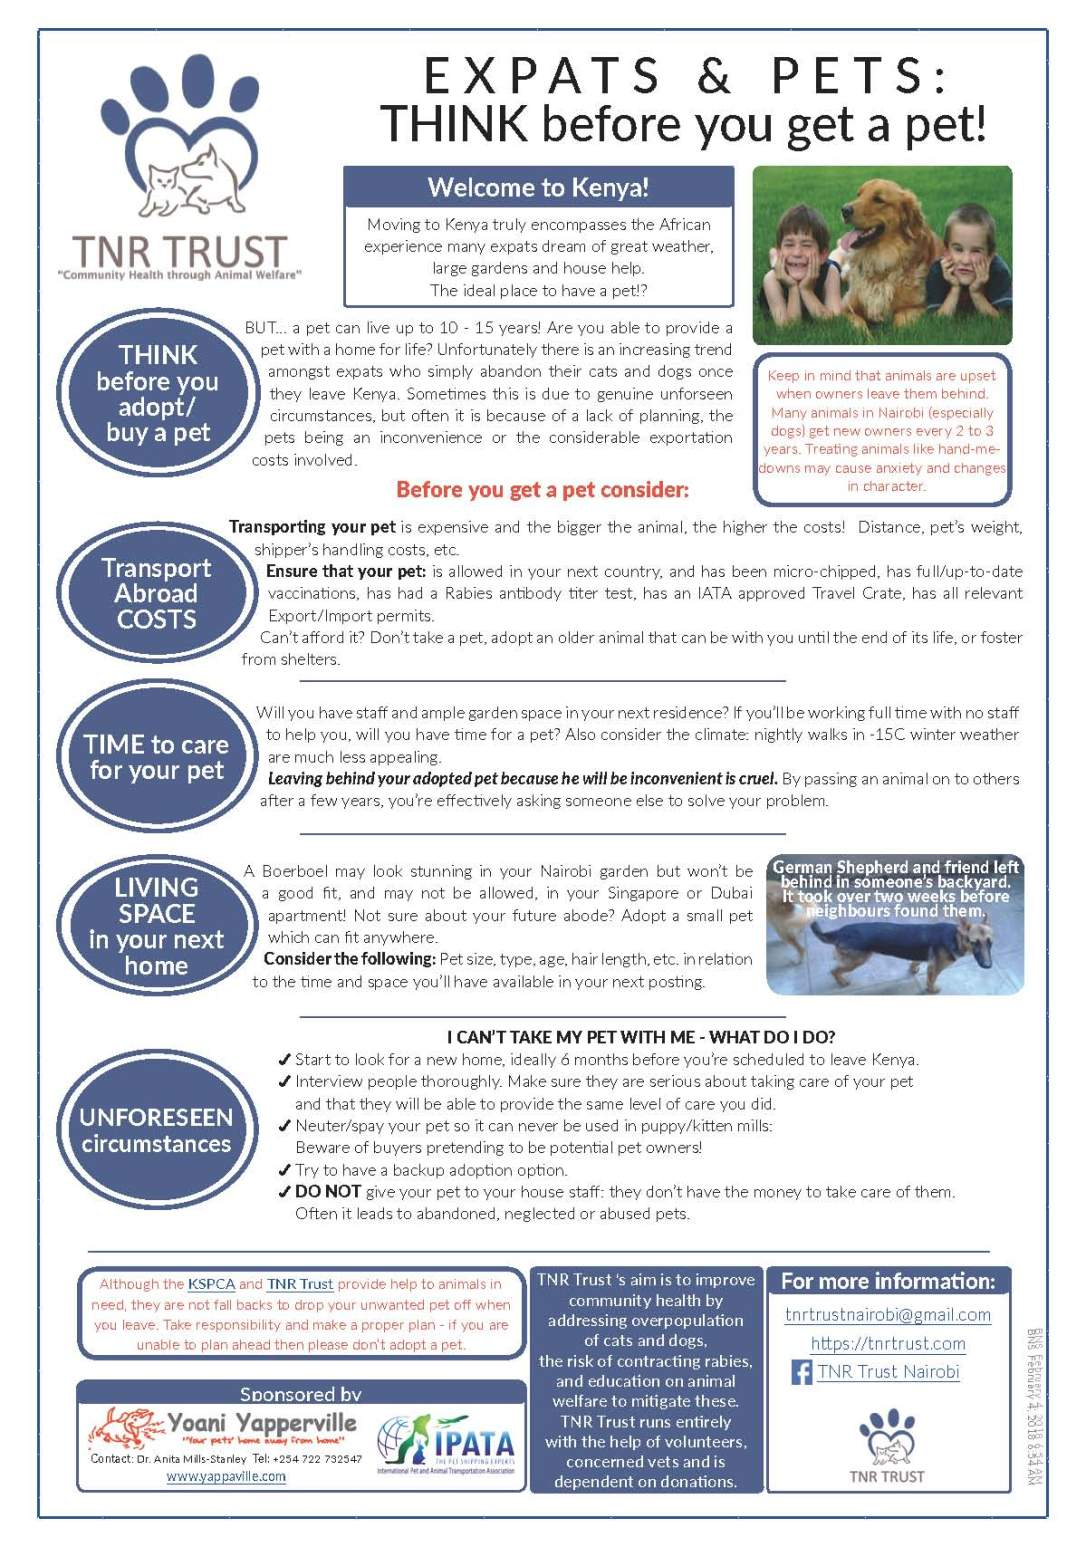 TNR Trust Expats & Pets 20180201 One-Page FINAL